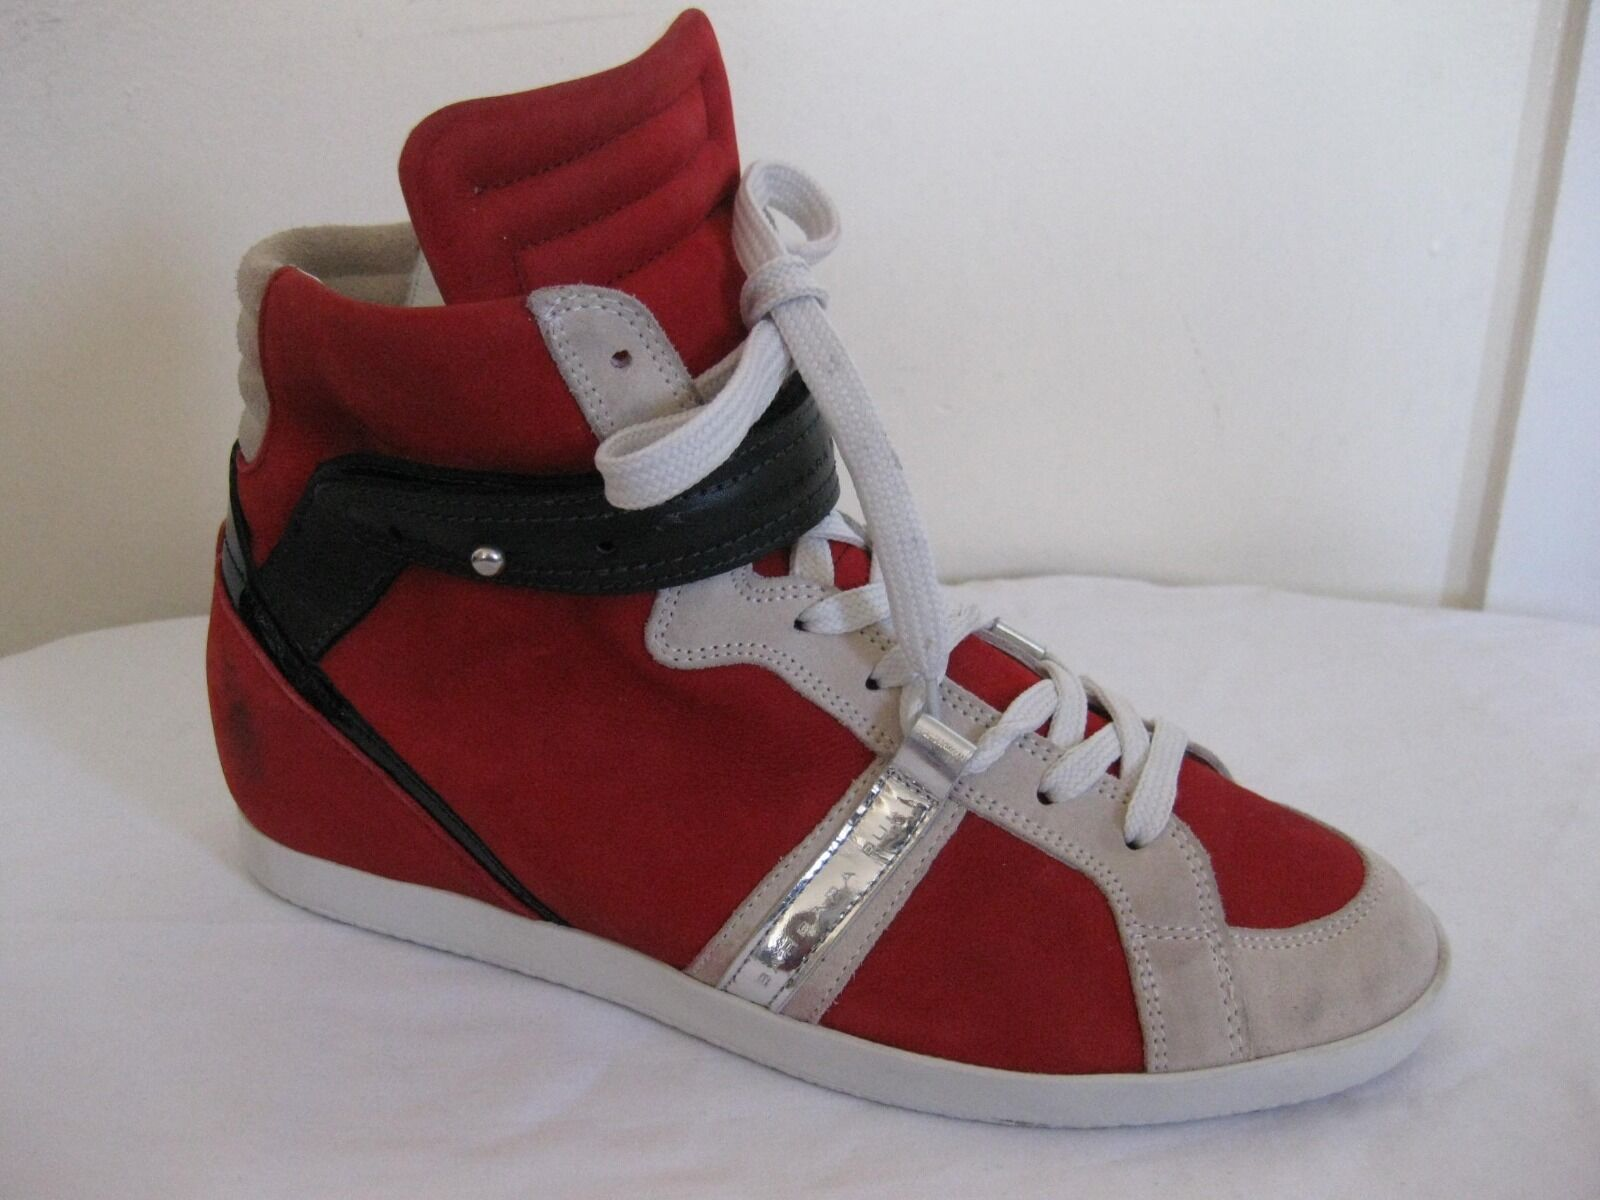 Barbara Bui Leather  High Top Fashion Sneakers Shoes Size US 9.5